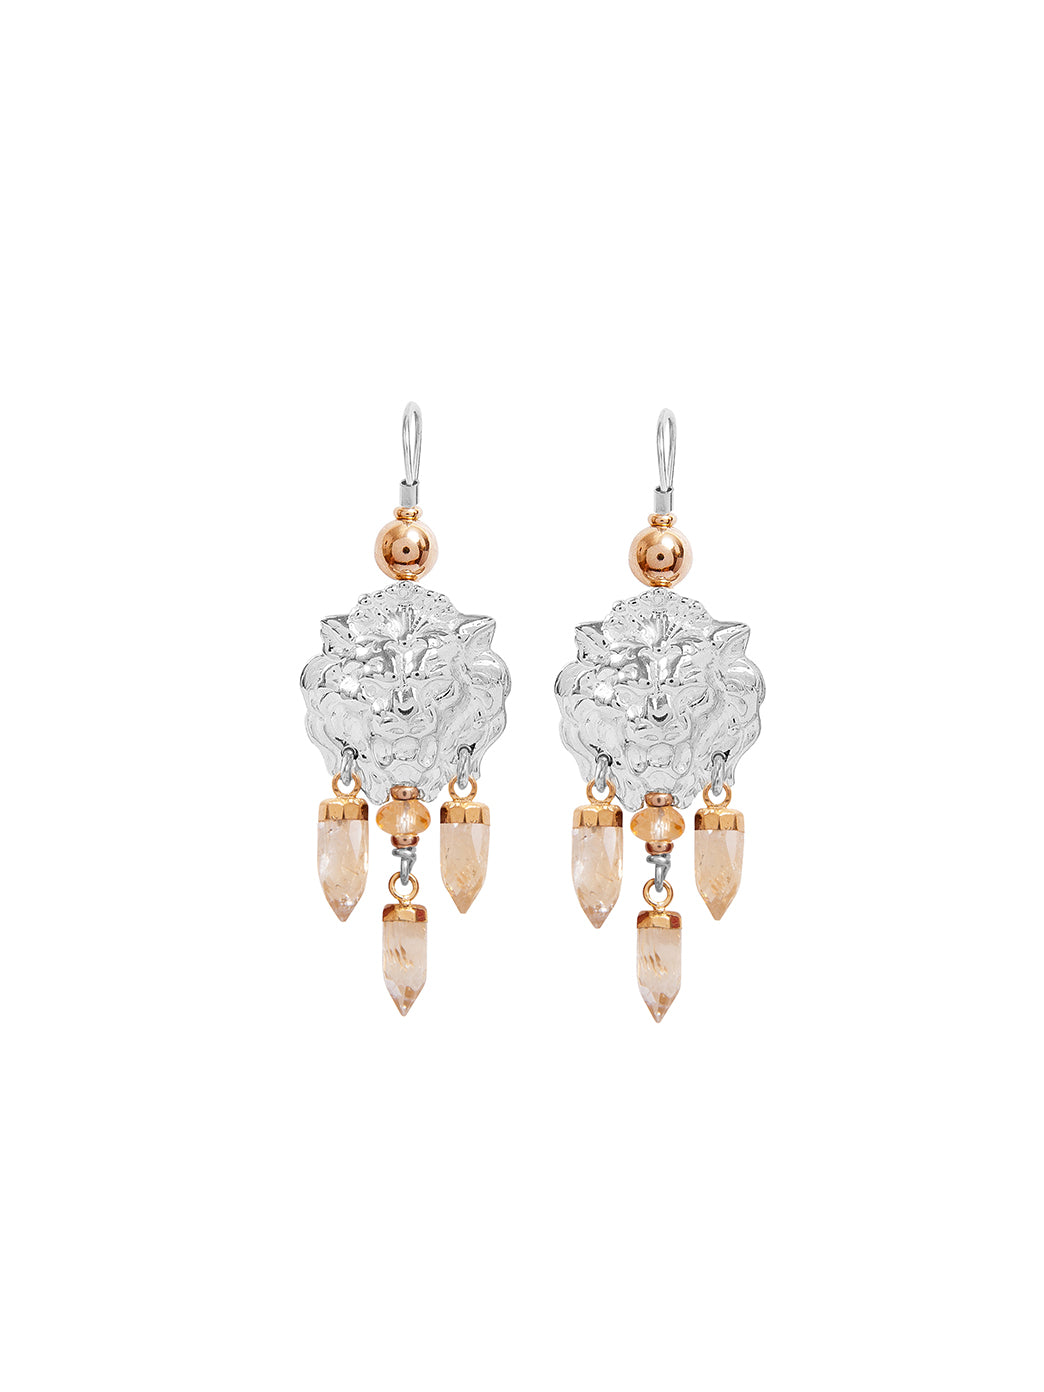 Fiorina Jewellery Taormina Earrings Citrine